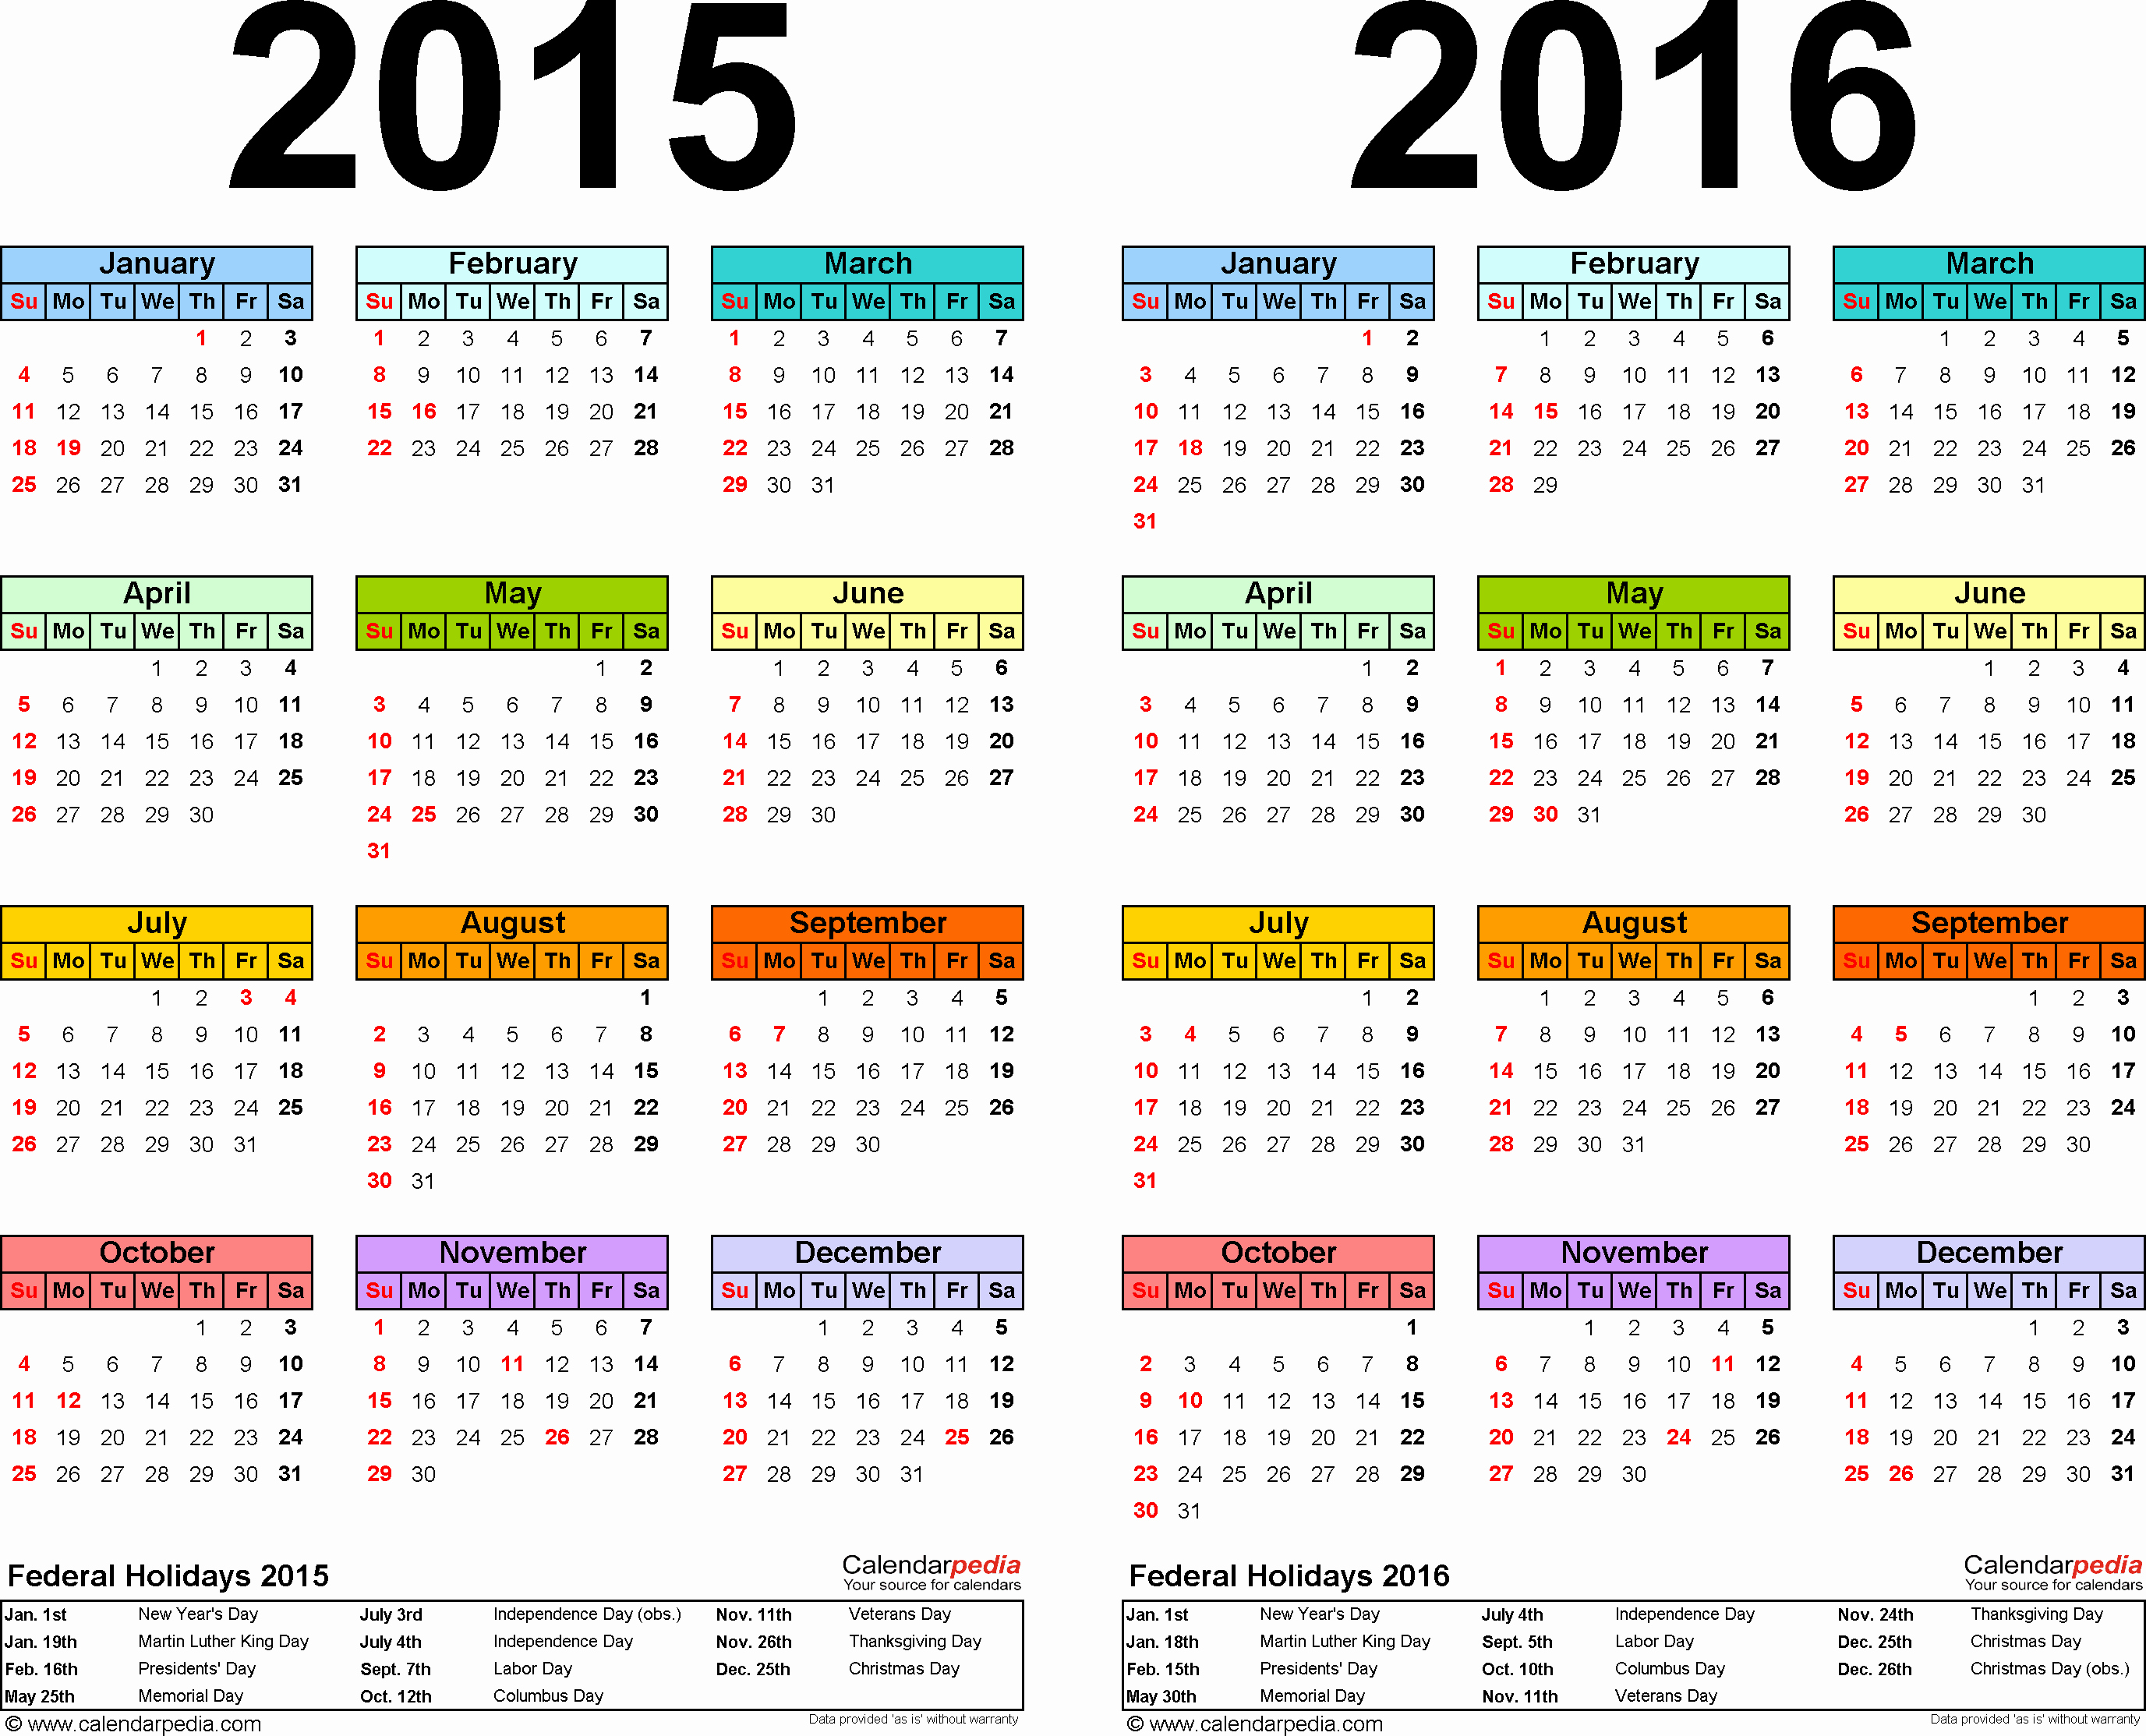 2015 Yearly Calendar Printable Landscape New 2015 2016 Calendar Free Printable Two Year Pdf Calendars